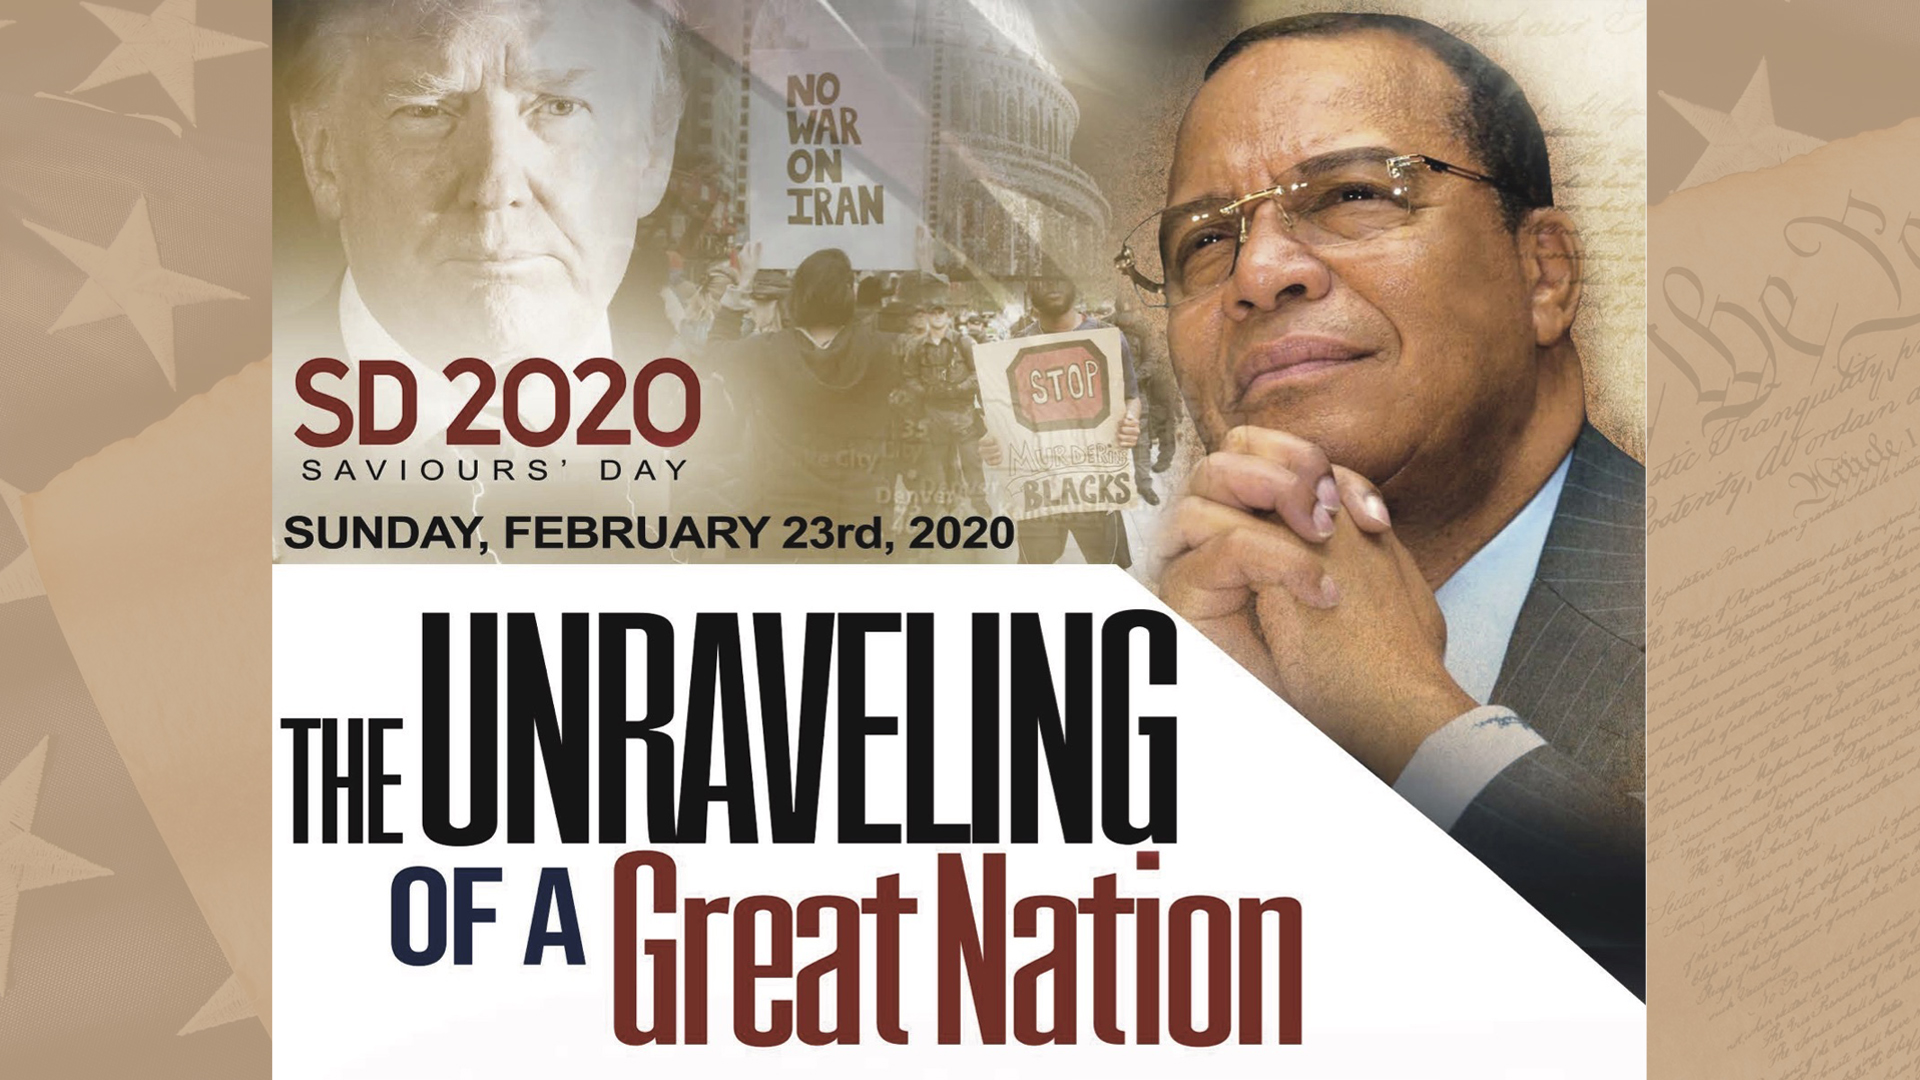 Saviours Day 2020 Keynote Address: The Unraveling of A Great Nation